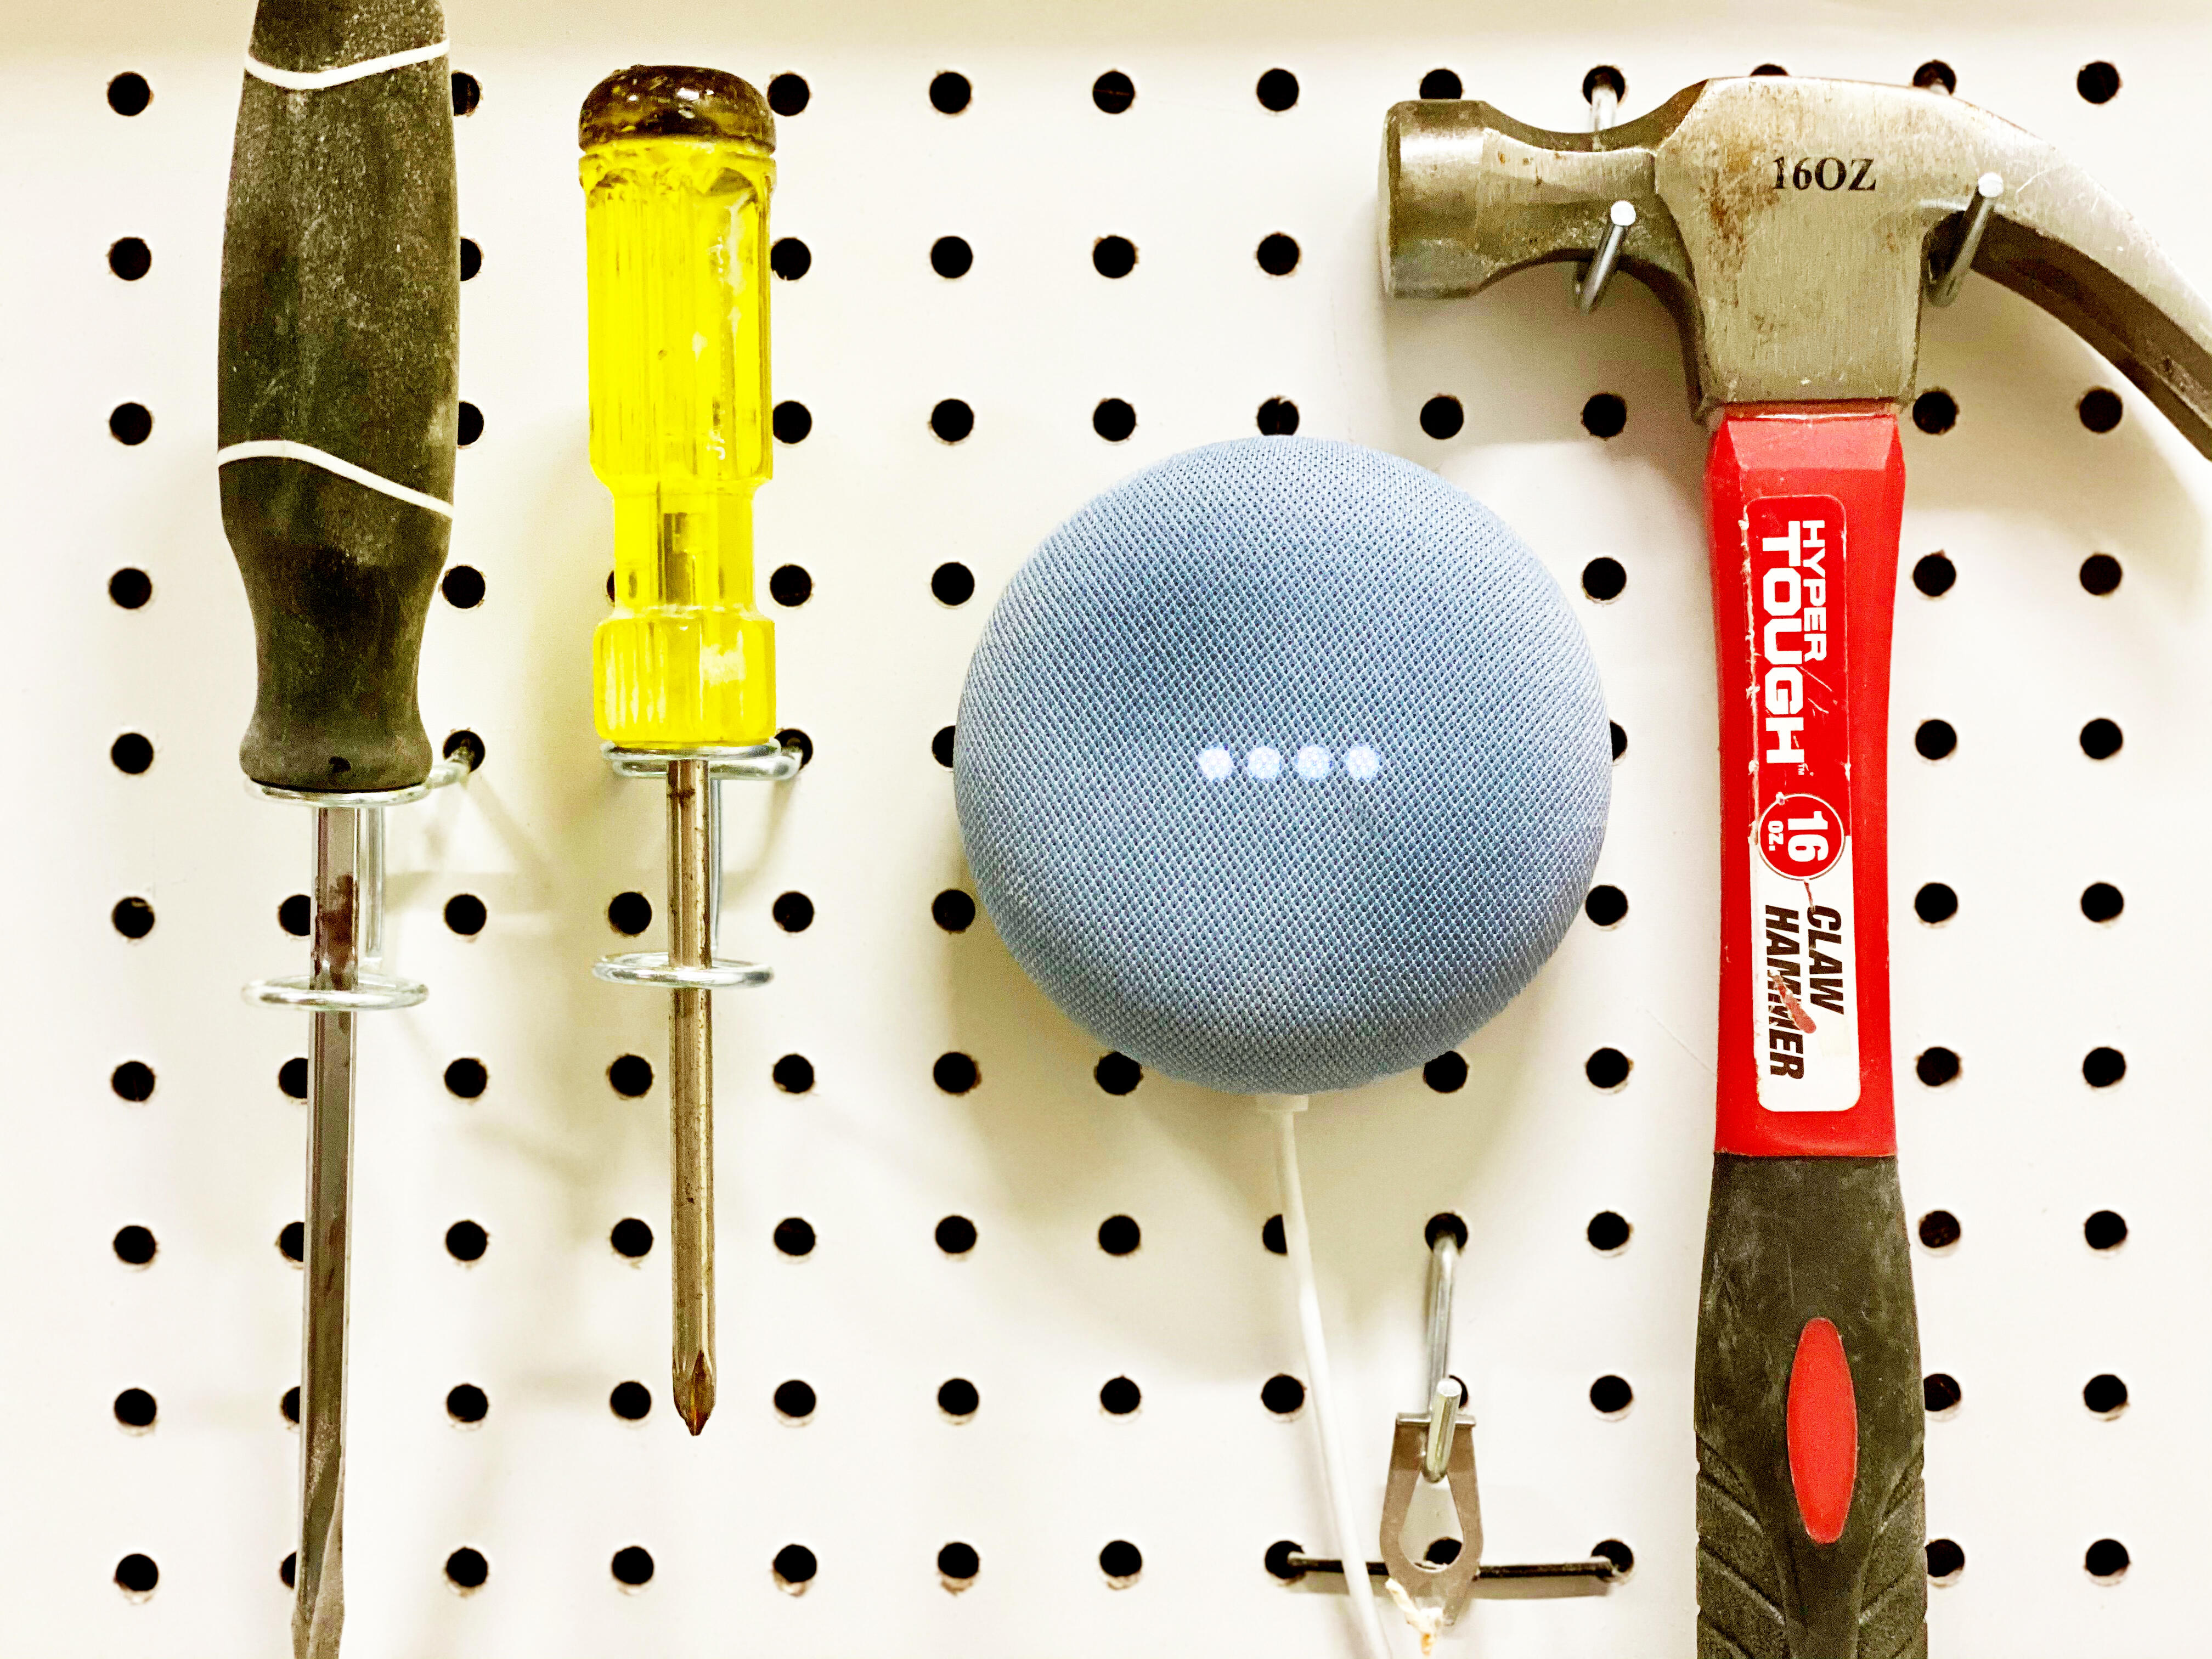 Google Home on pegboard with tools